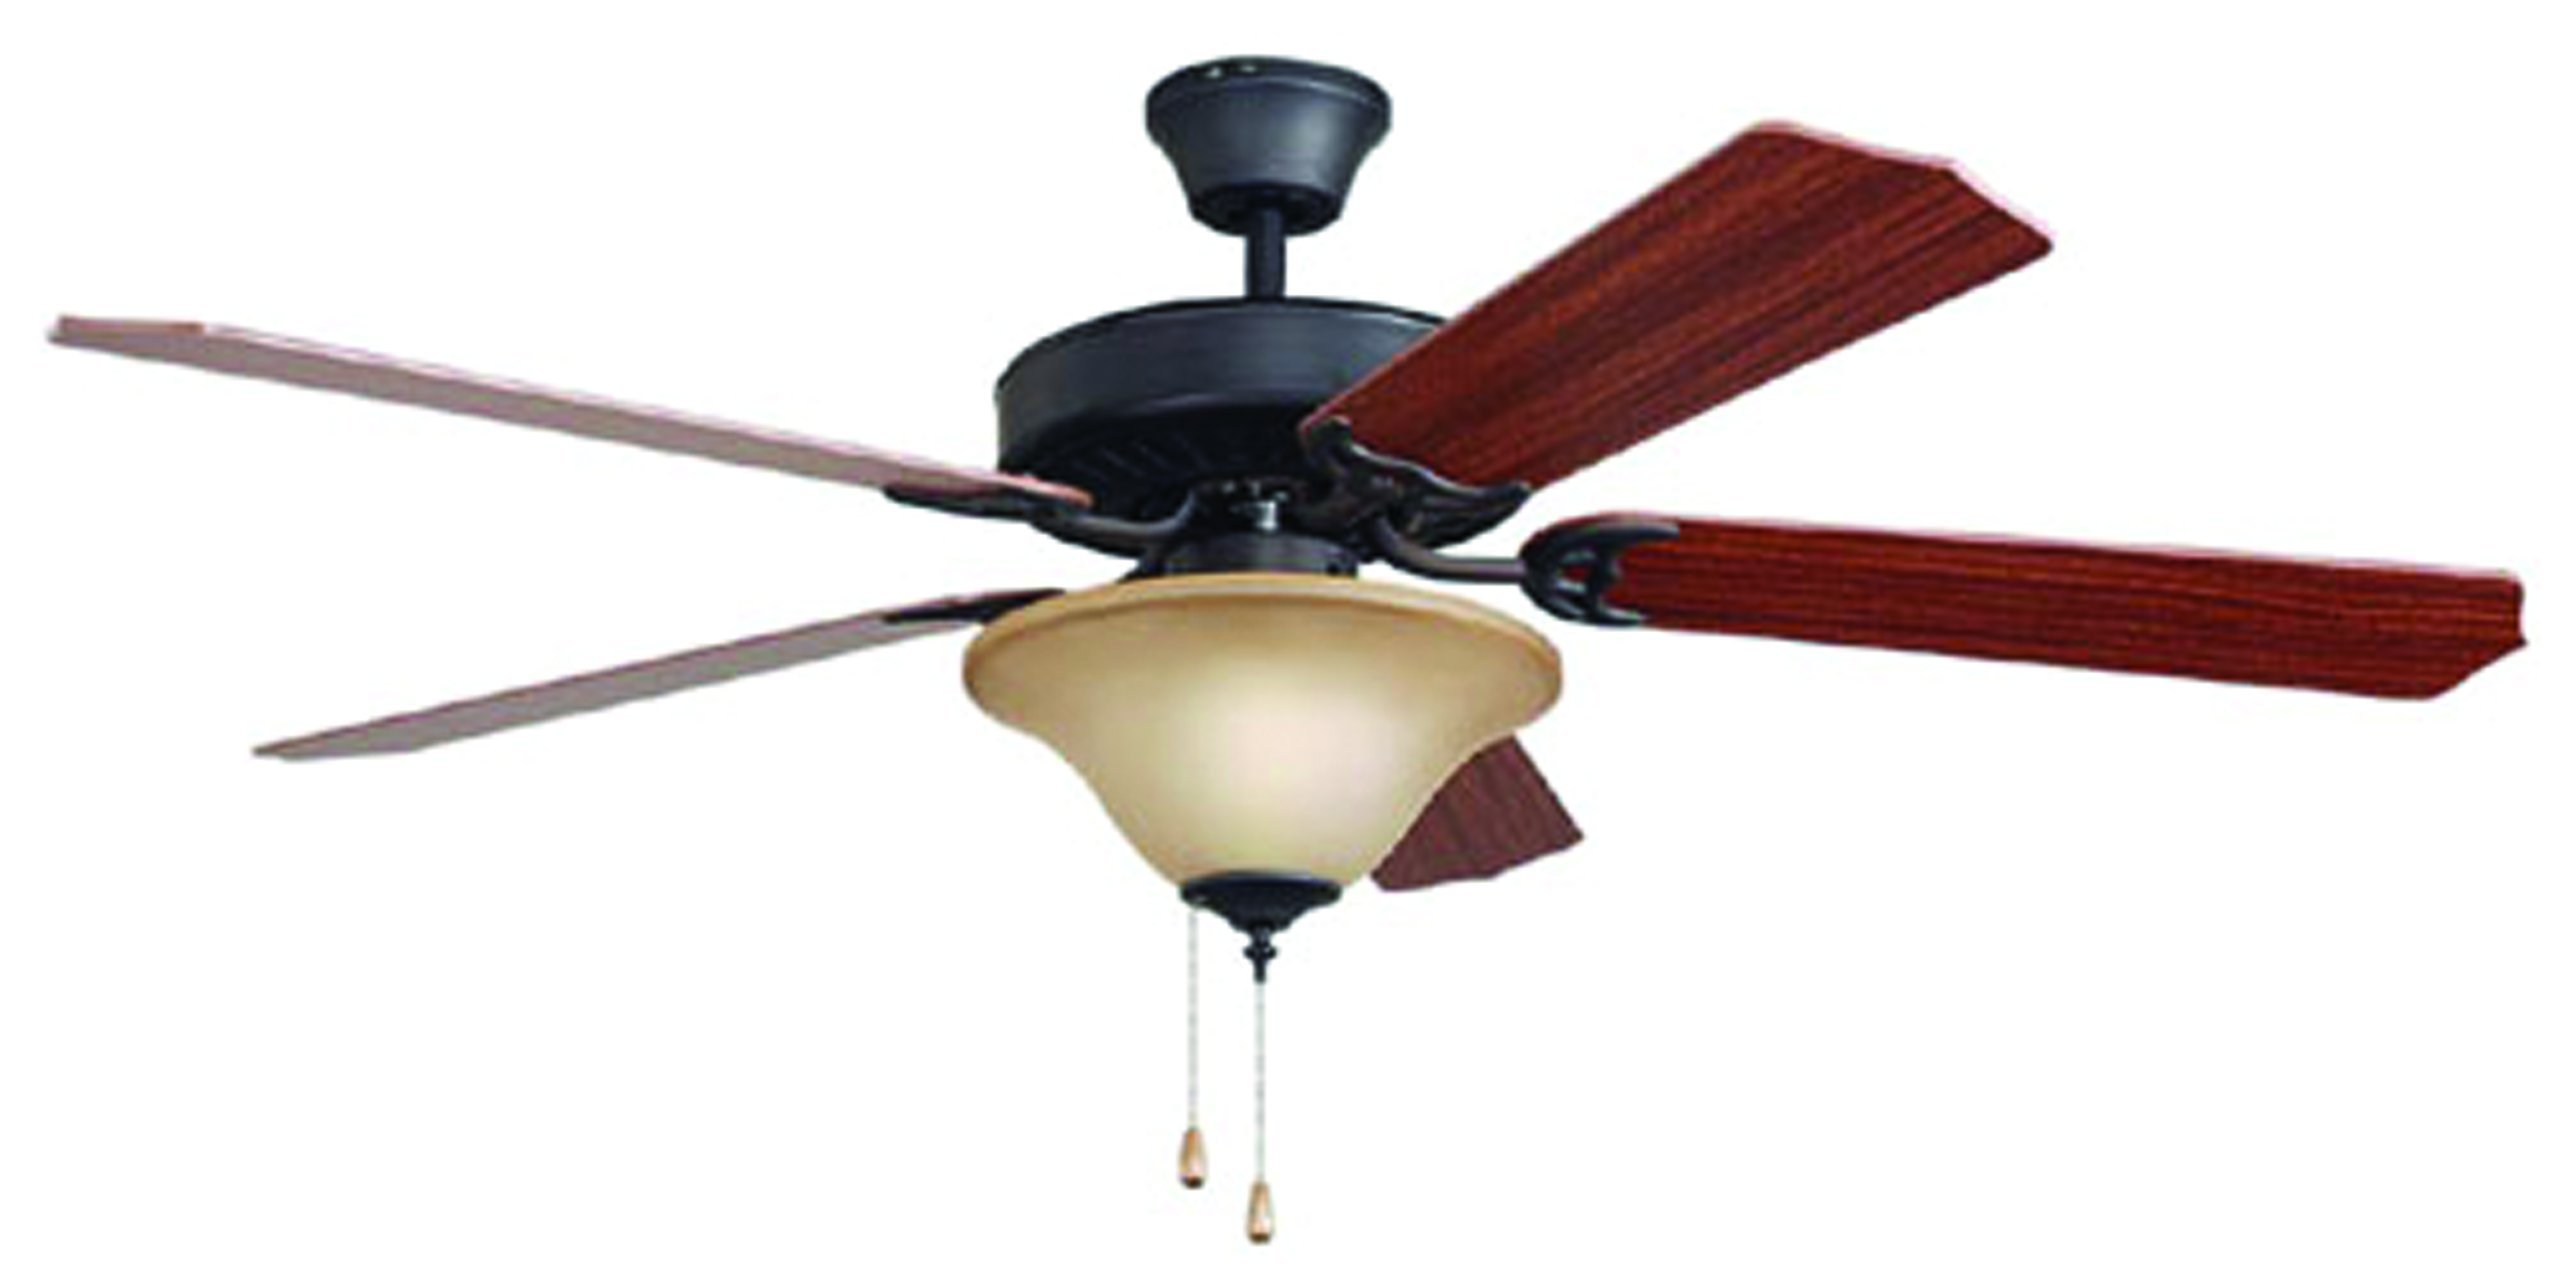 Bala 283015 Dual Mount Ceiling Fan with Bowl Light Kit, 52-Inch, Aged Bronze